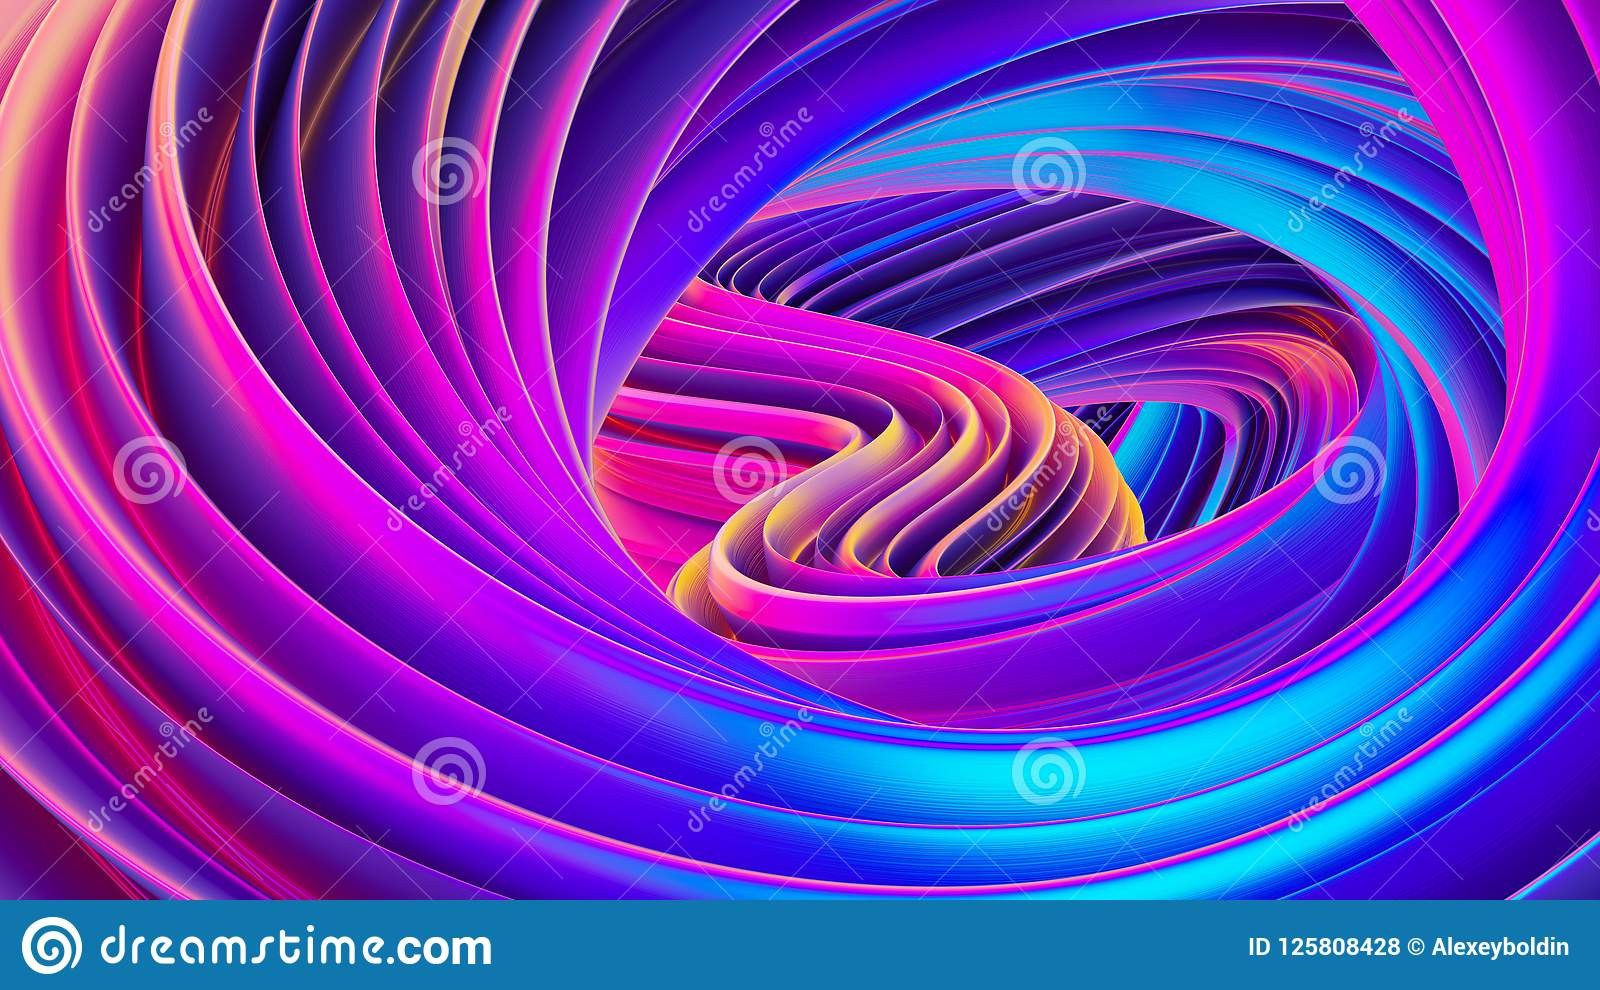 Iridescent Wallpaper Fluid Design Twisted Shapes Holographic 3d Abstract Background